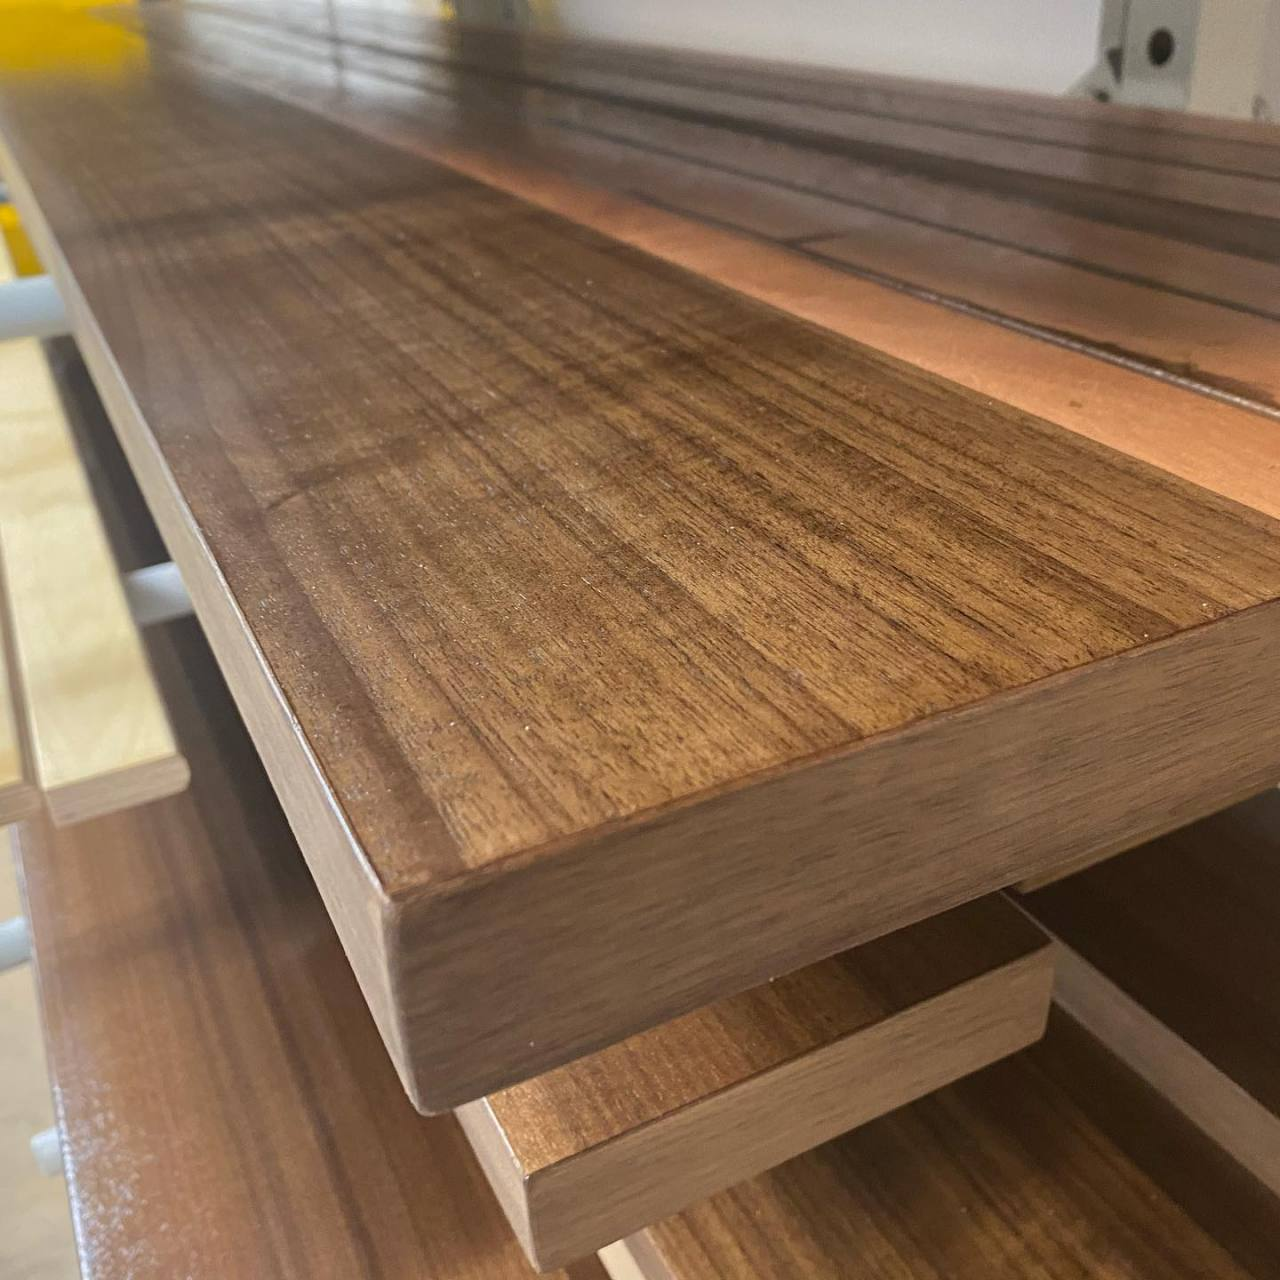 Walnut for @alfonsoarchitects @thehoteleleo . Teak for @digarchitecture